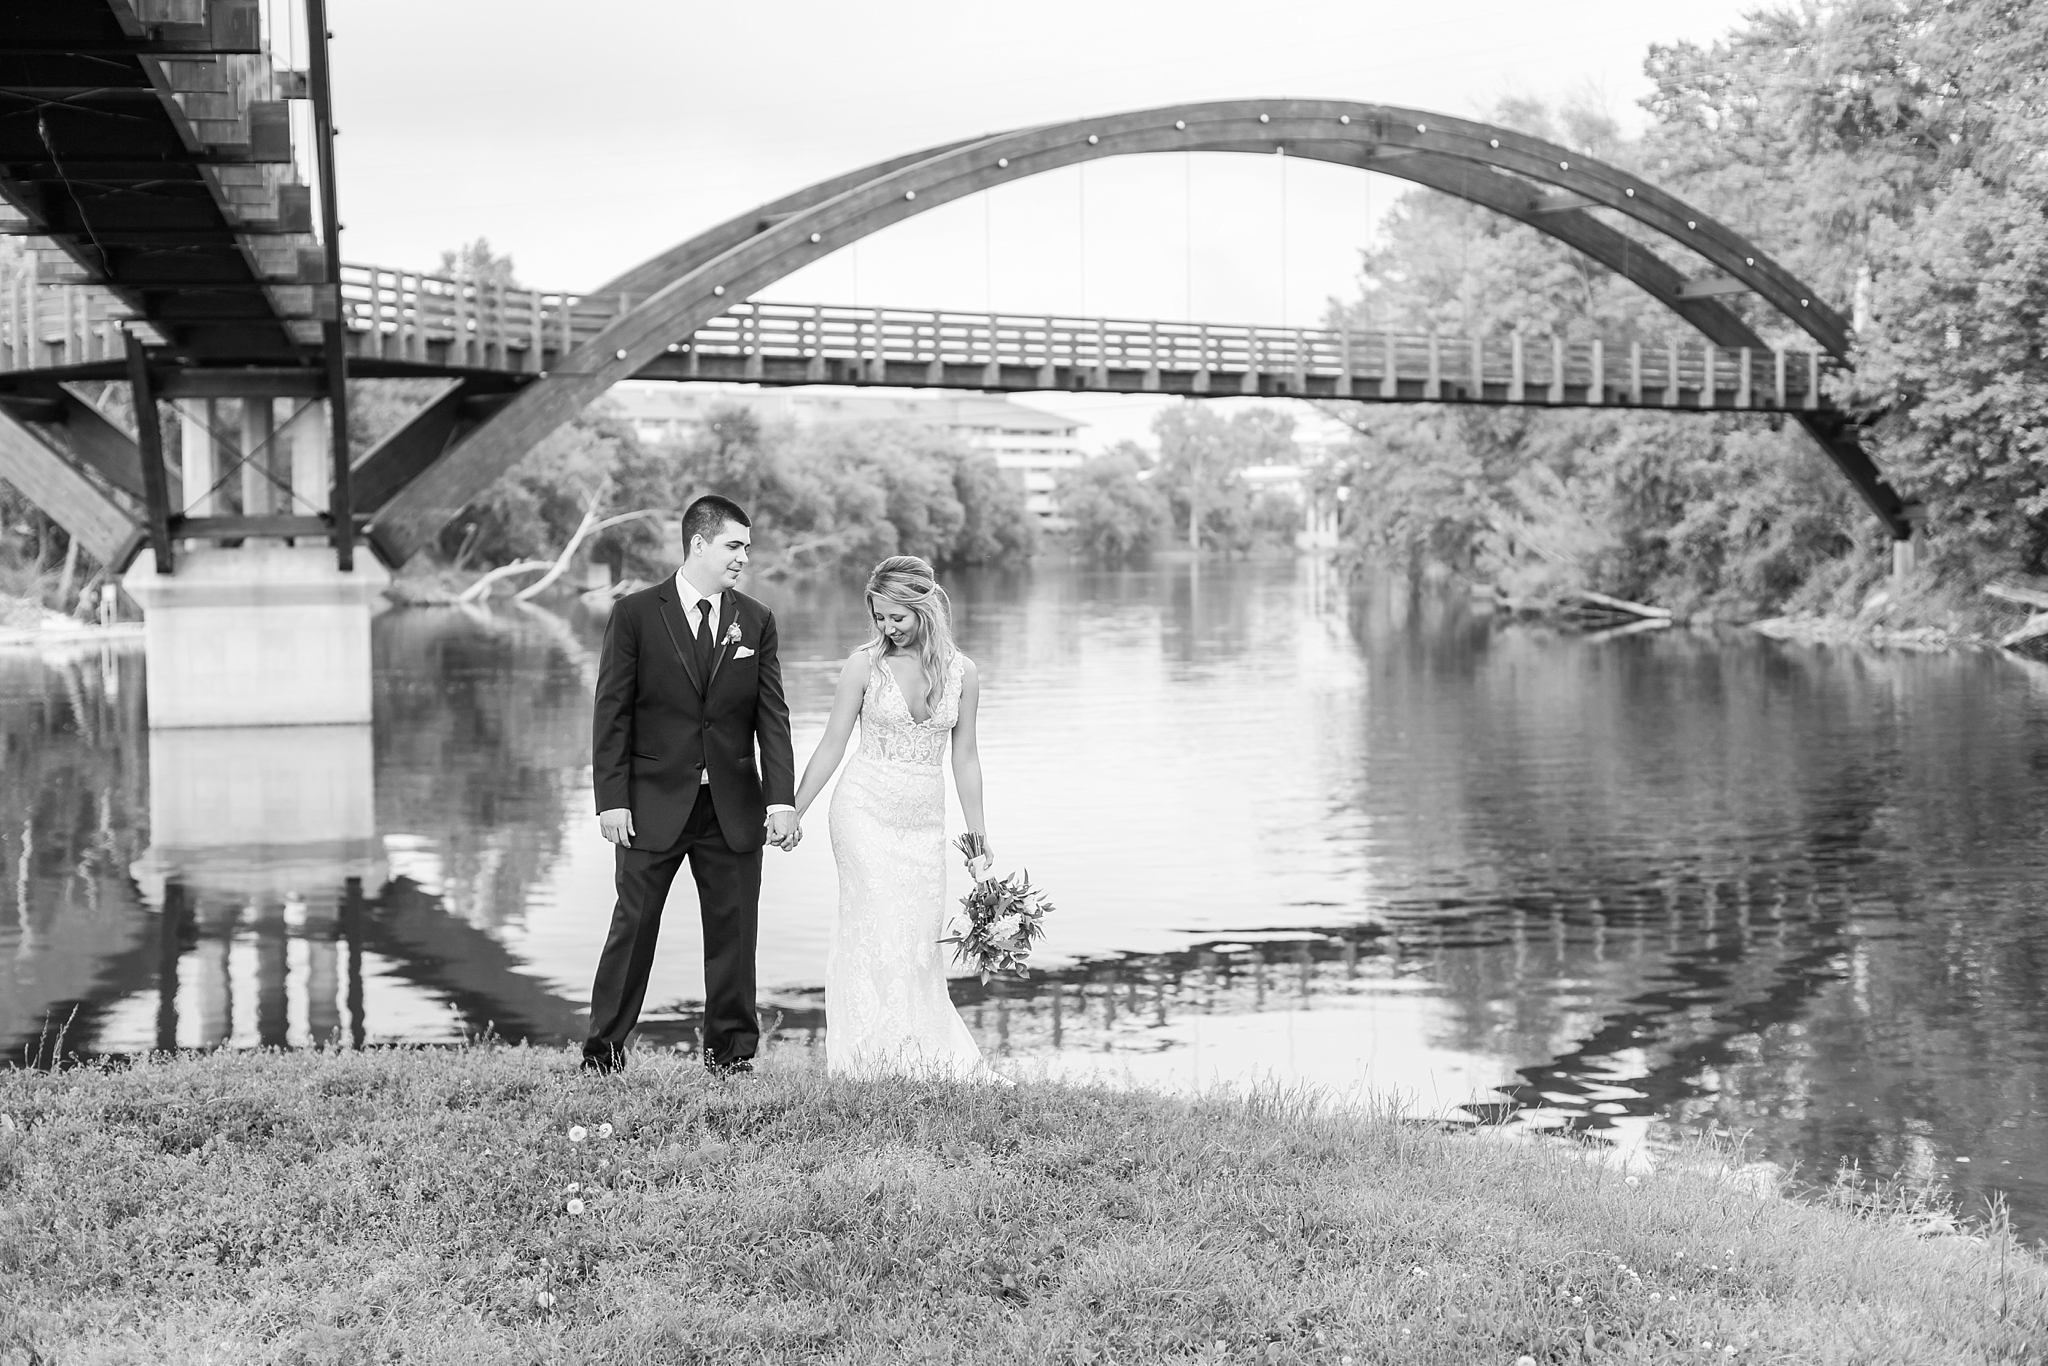 candid-romantic-wedding-photos-at-the-h-hotel-in-midland-michigan-by-courtney-carolyn-photography_0111.jpg